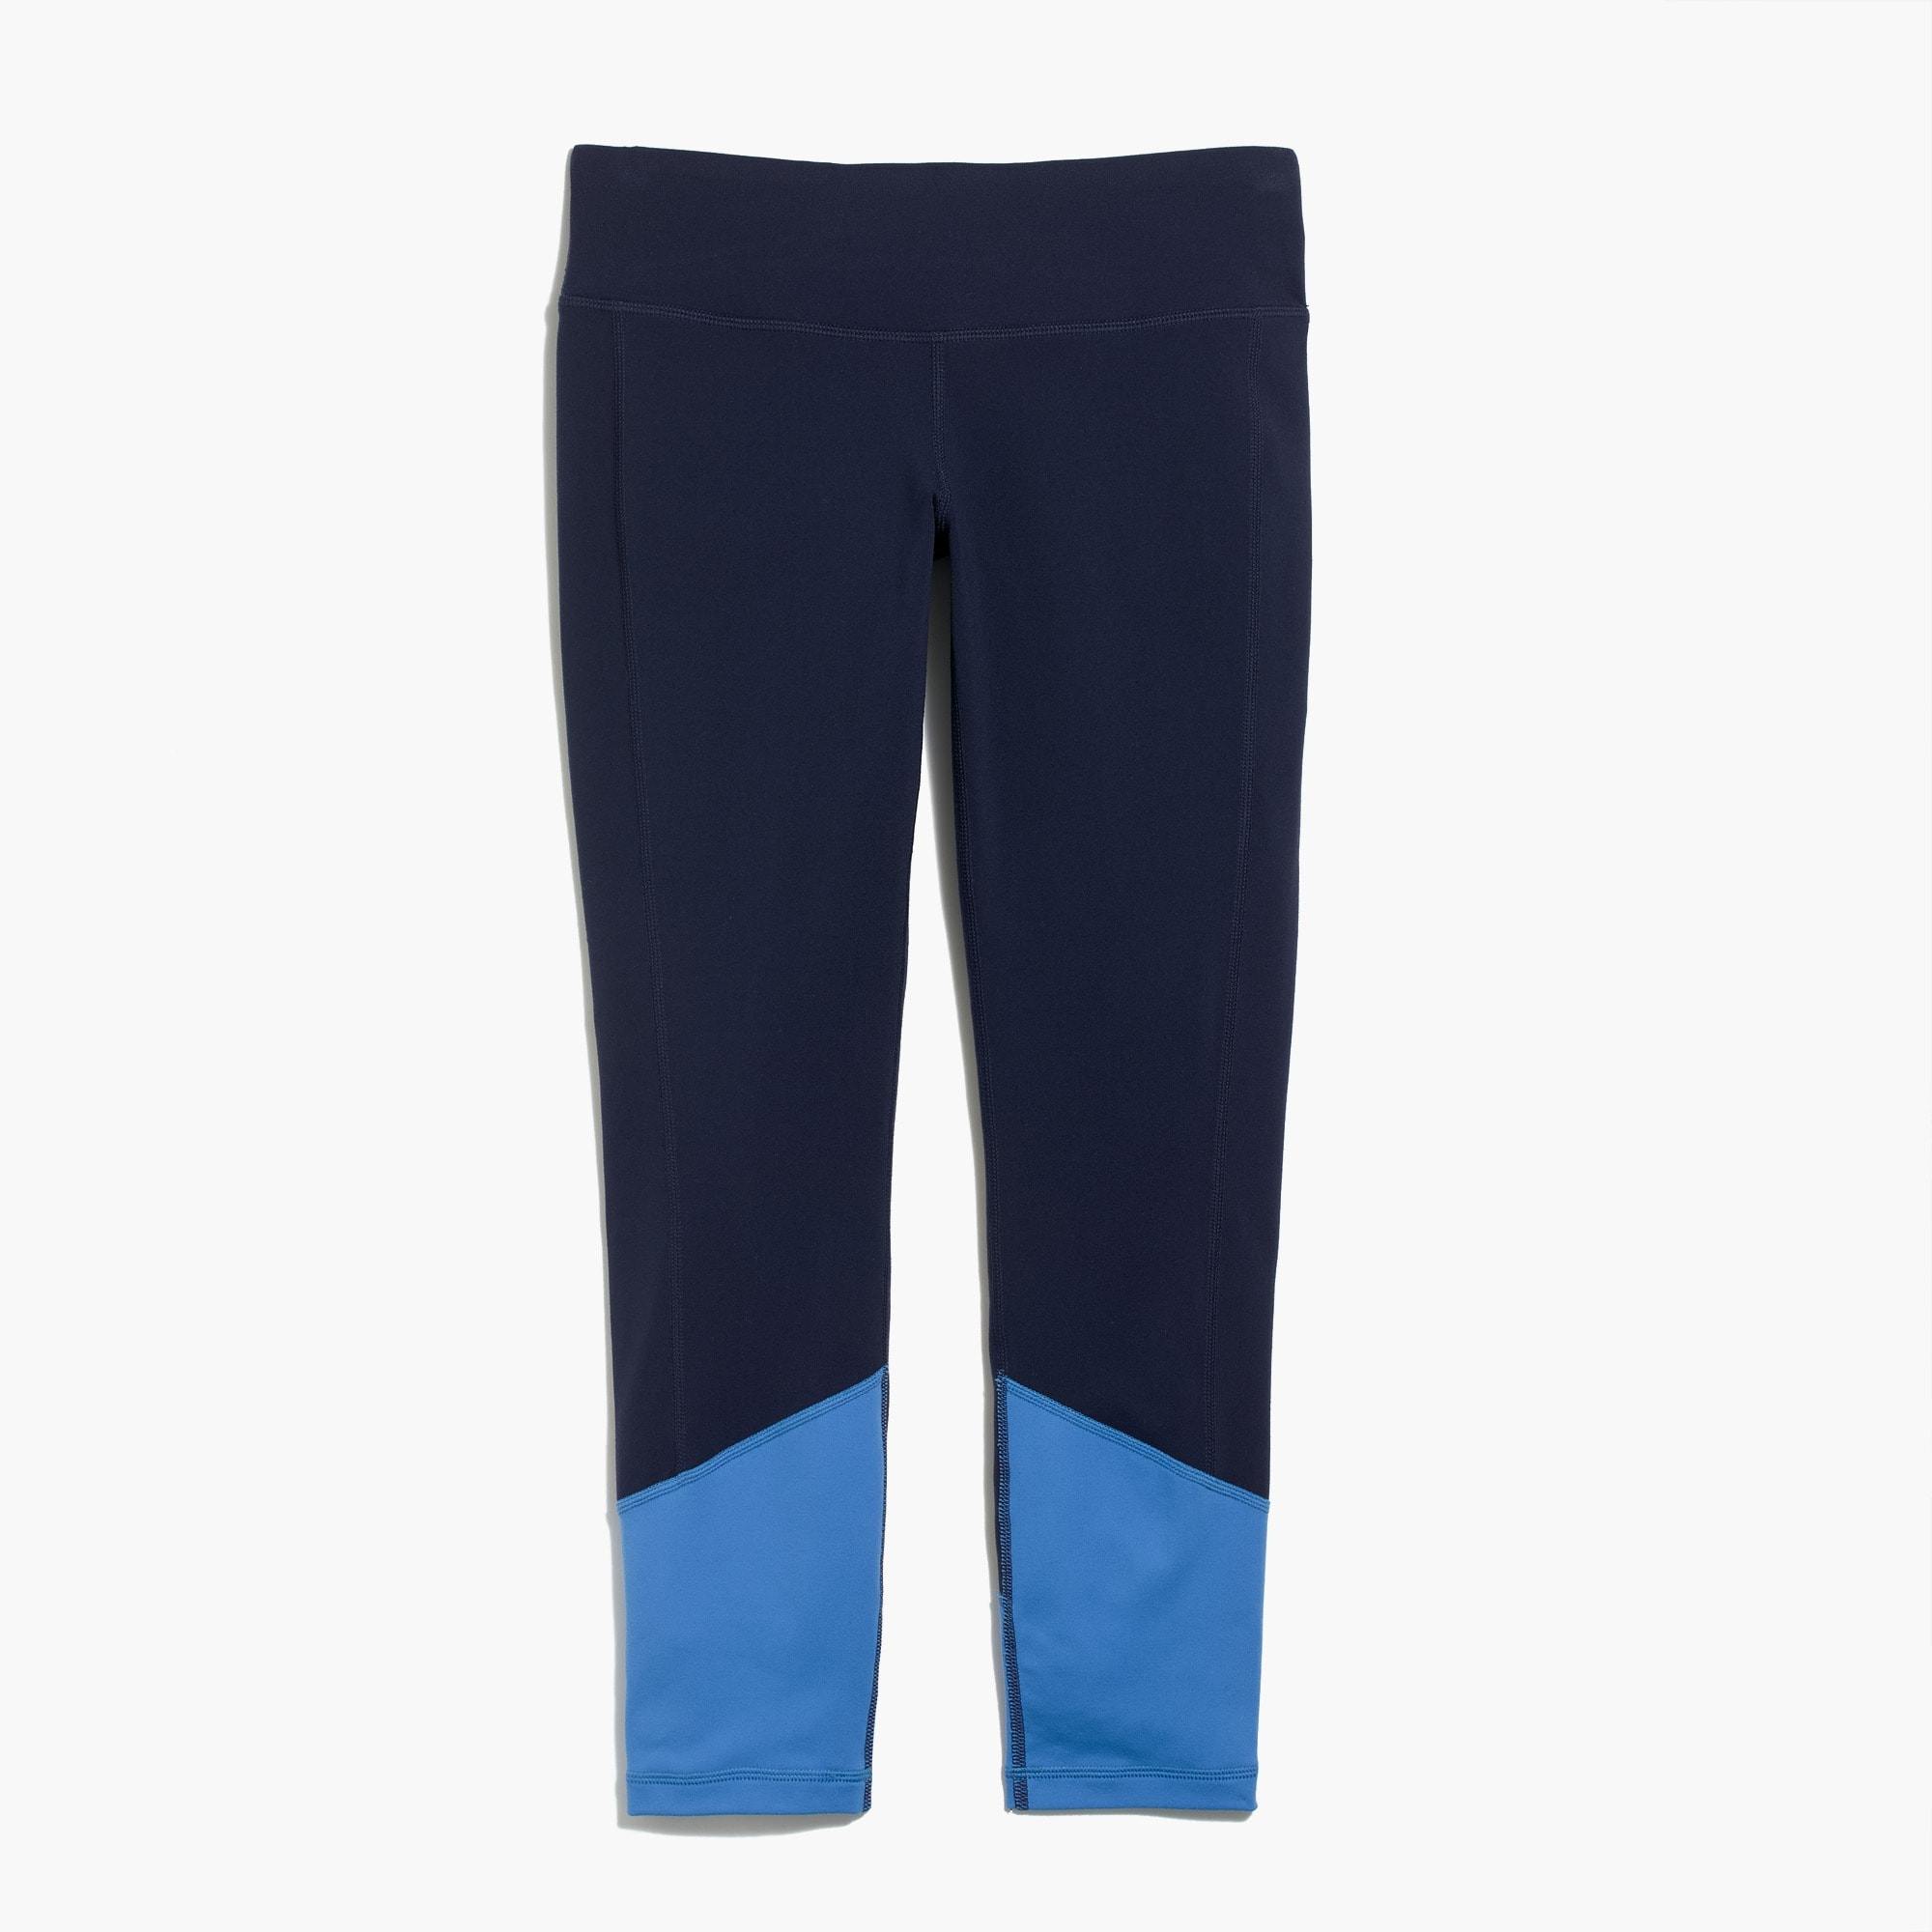 Colorblock premium performance capri leggings